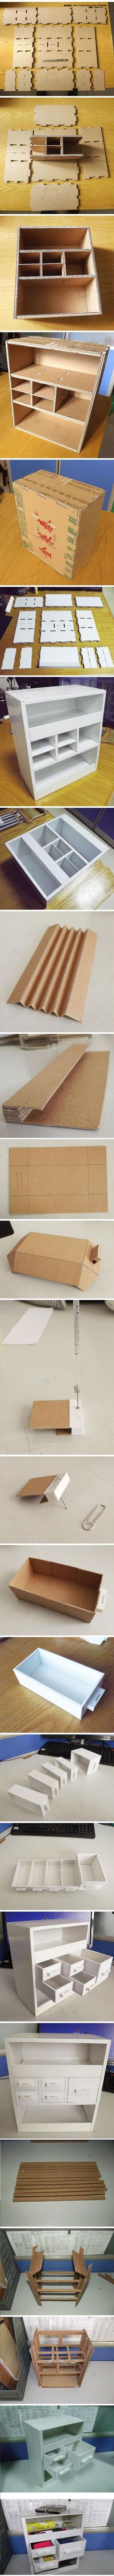 Storage Box with Drawer | Materials: Corrugated Cardboard | Instructions: http://tieba.baidu.com/p/1537506603